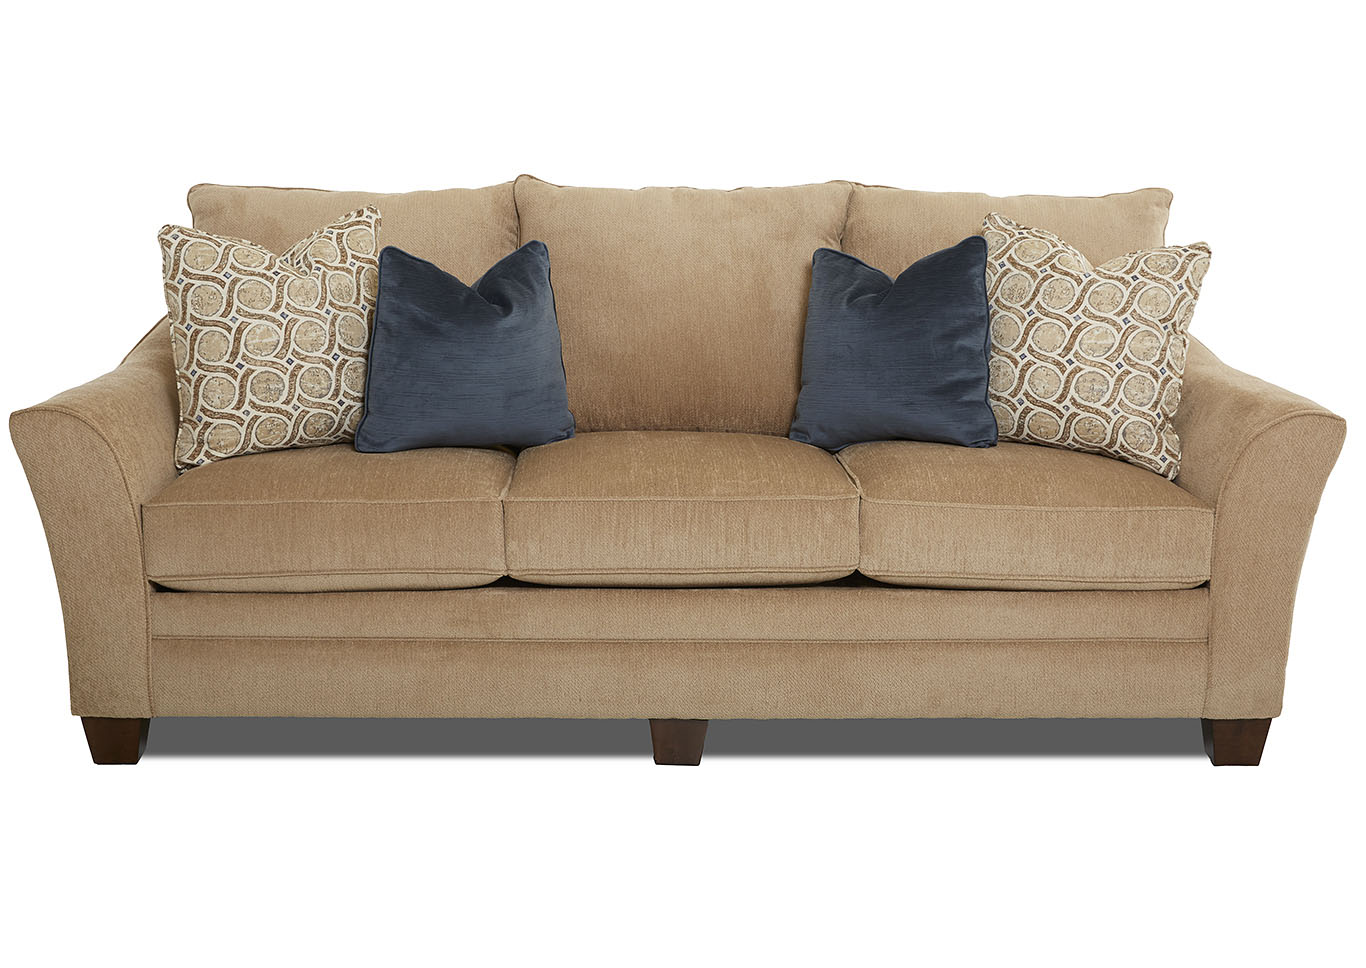 Posen Oatmeal Stationary Fabric Sofa,Klaussner Home Furnishings